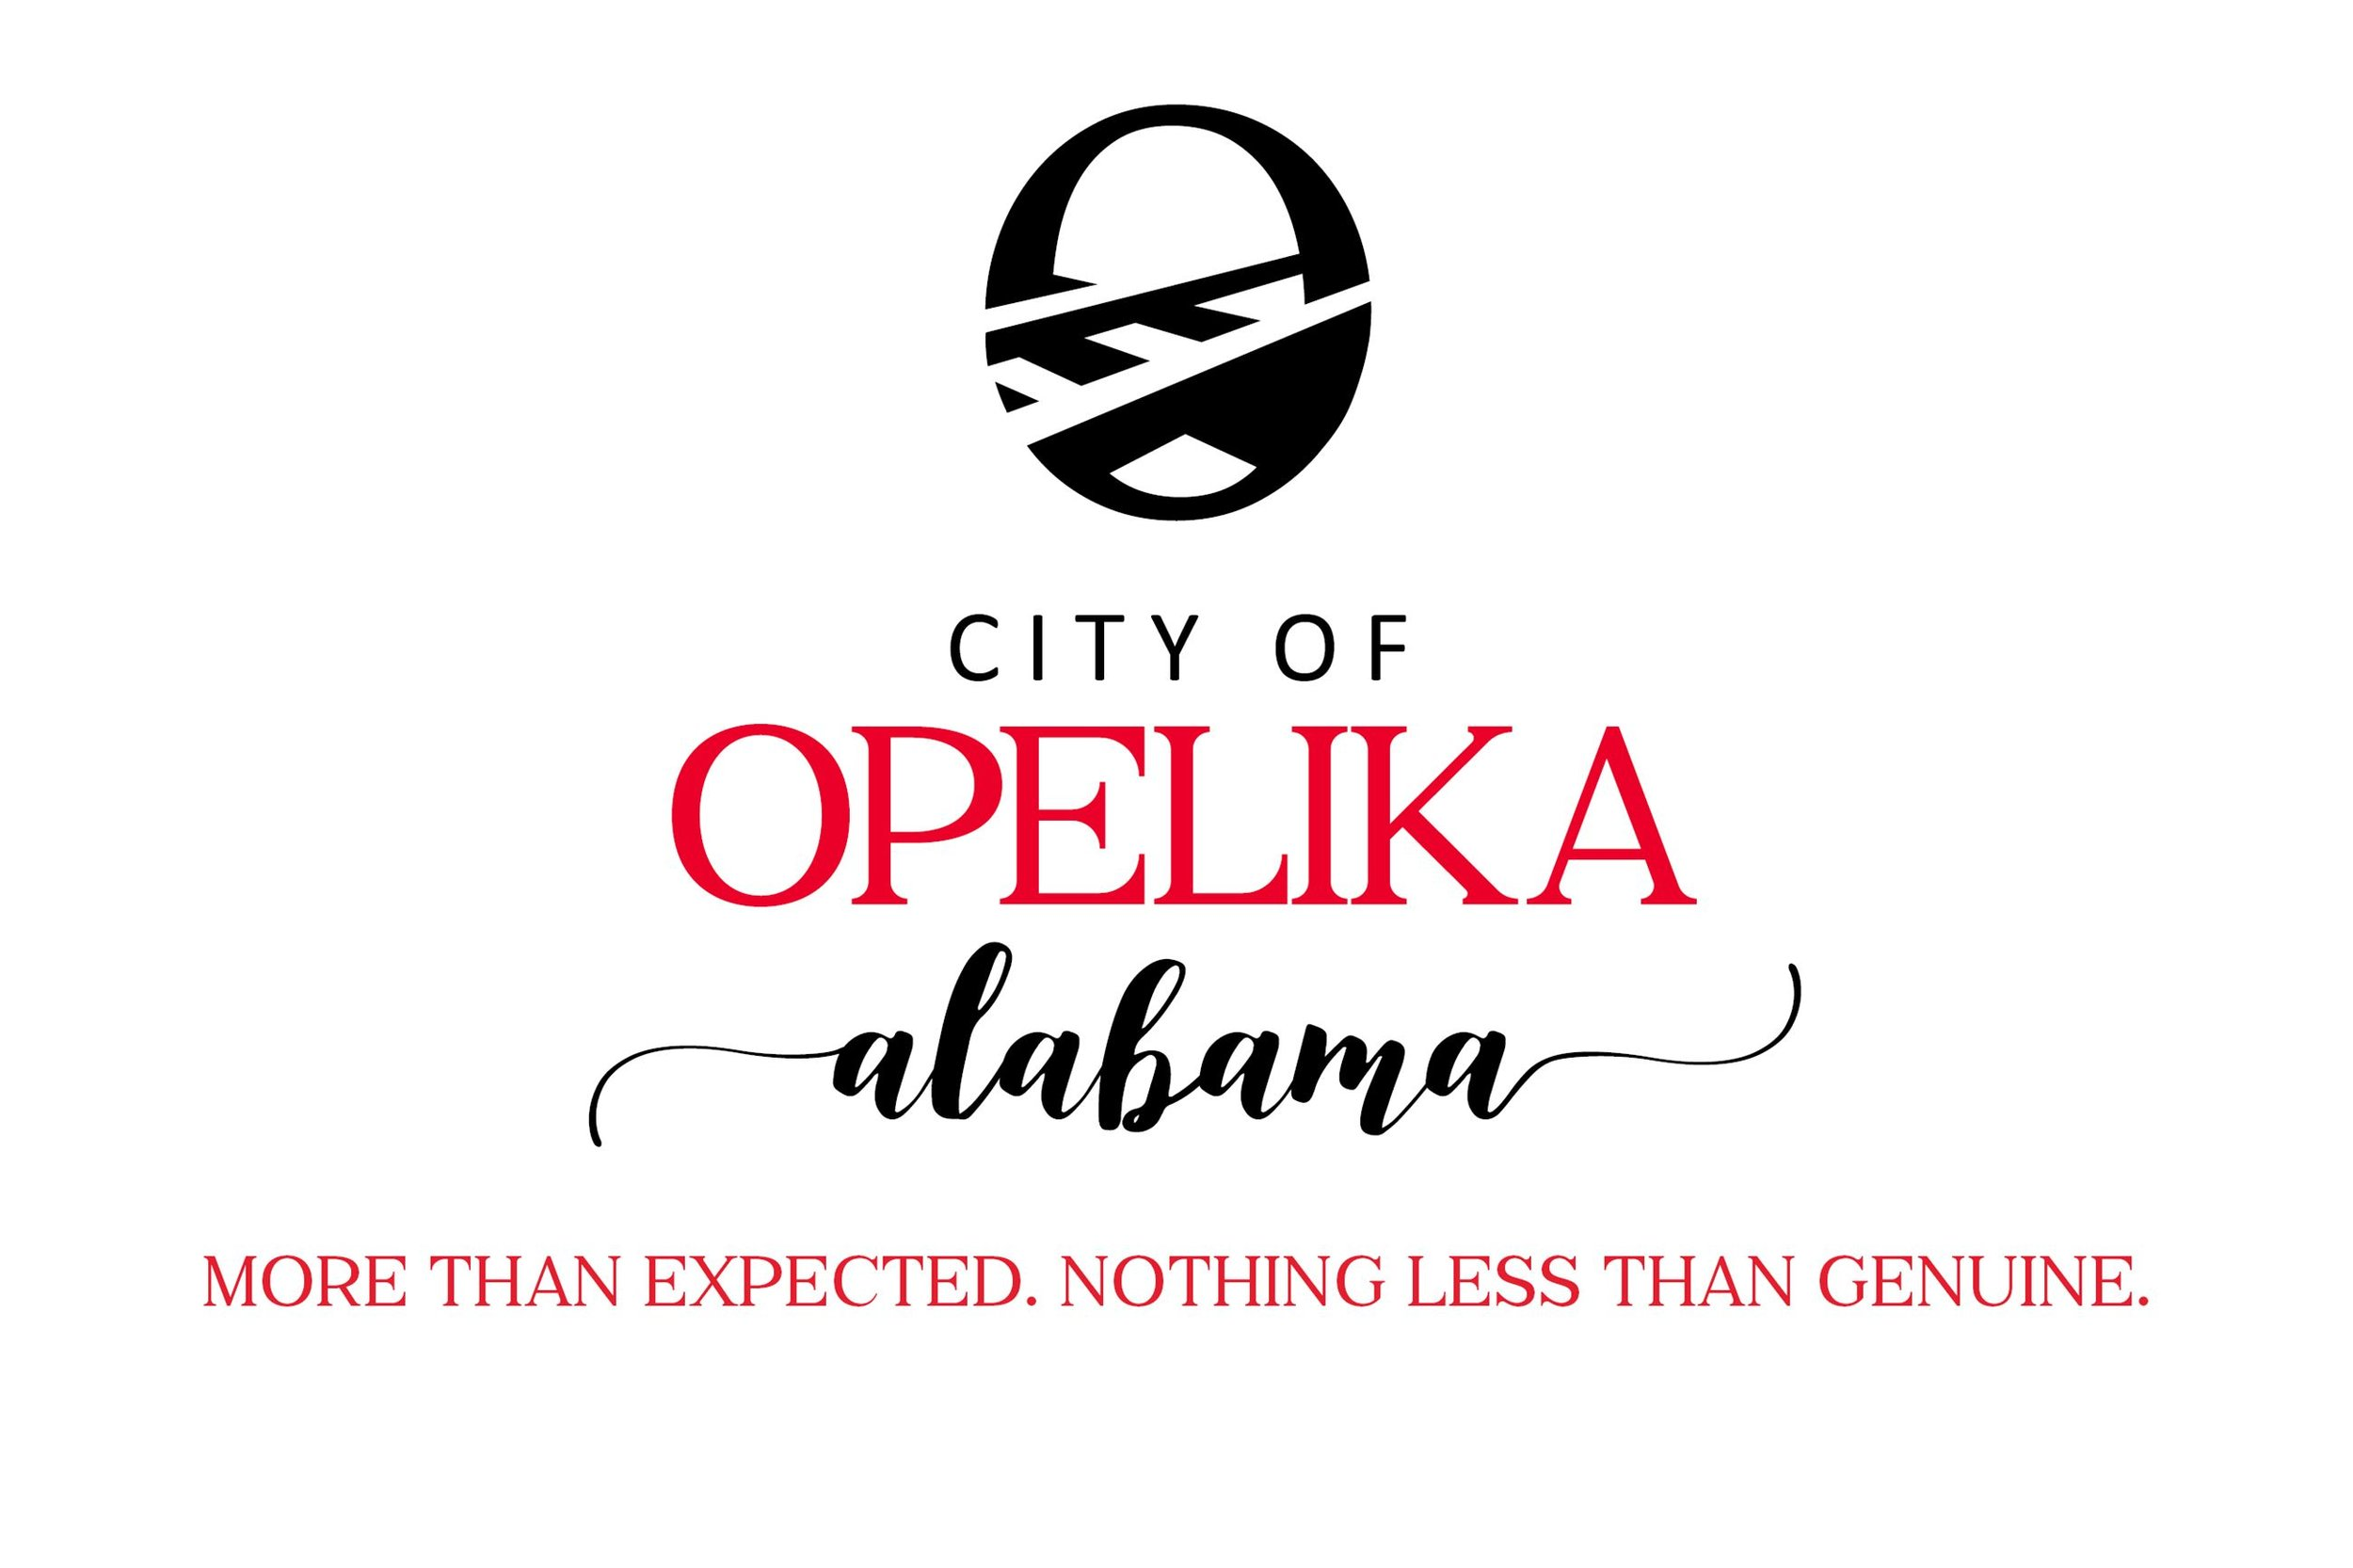 The City of Opelika